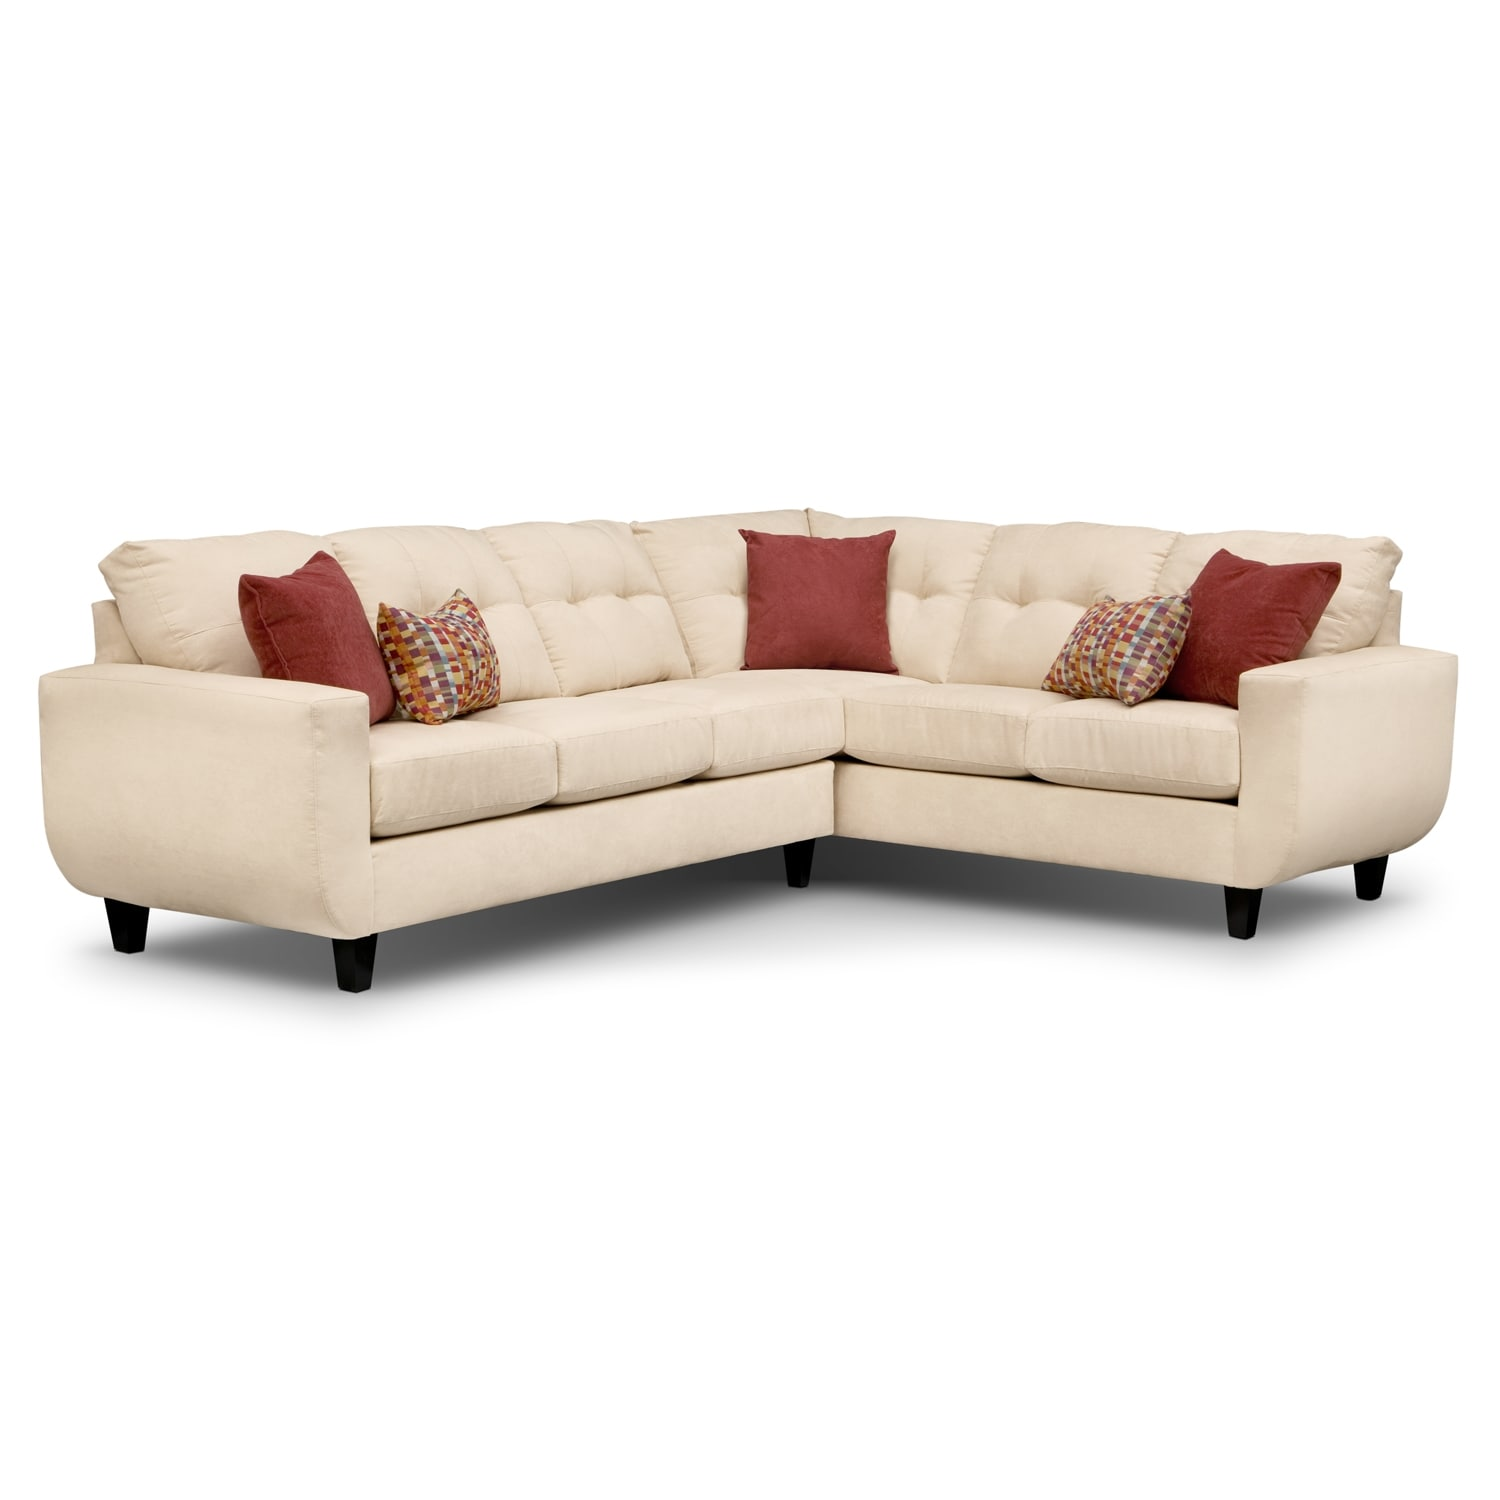 Furniture Village City Sofa Best 2017